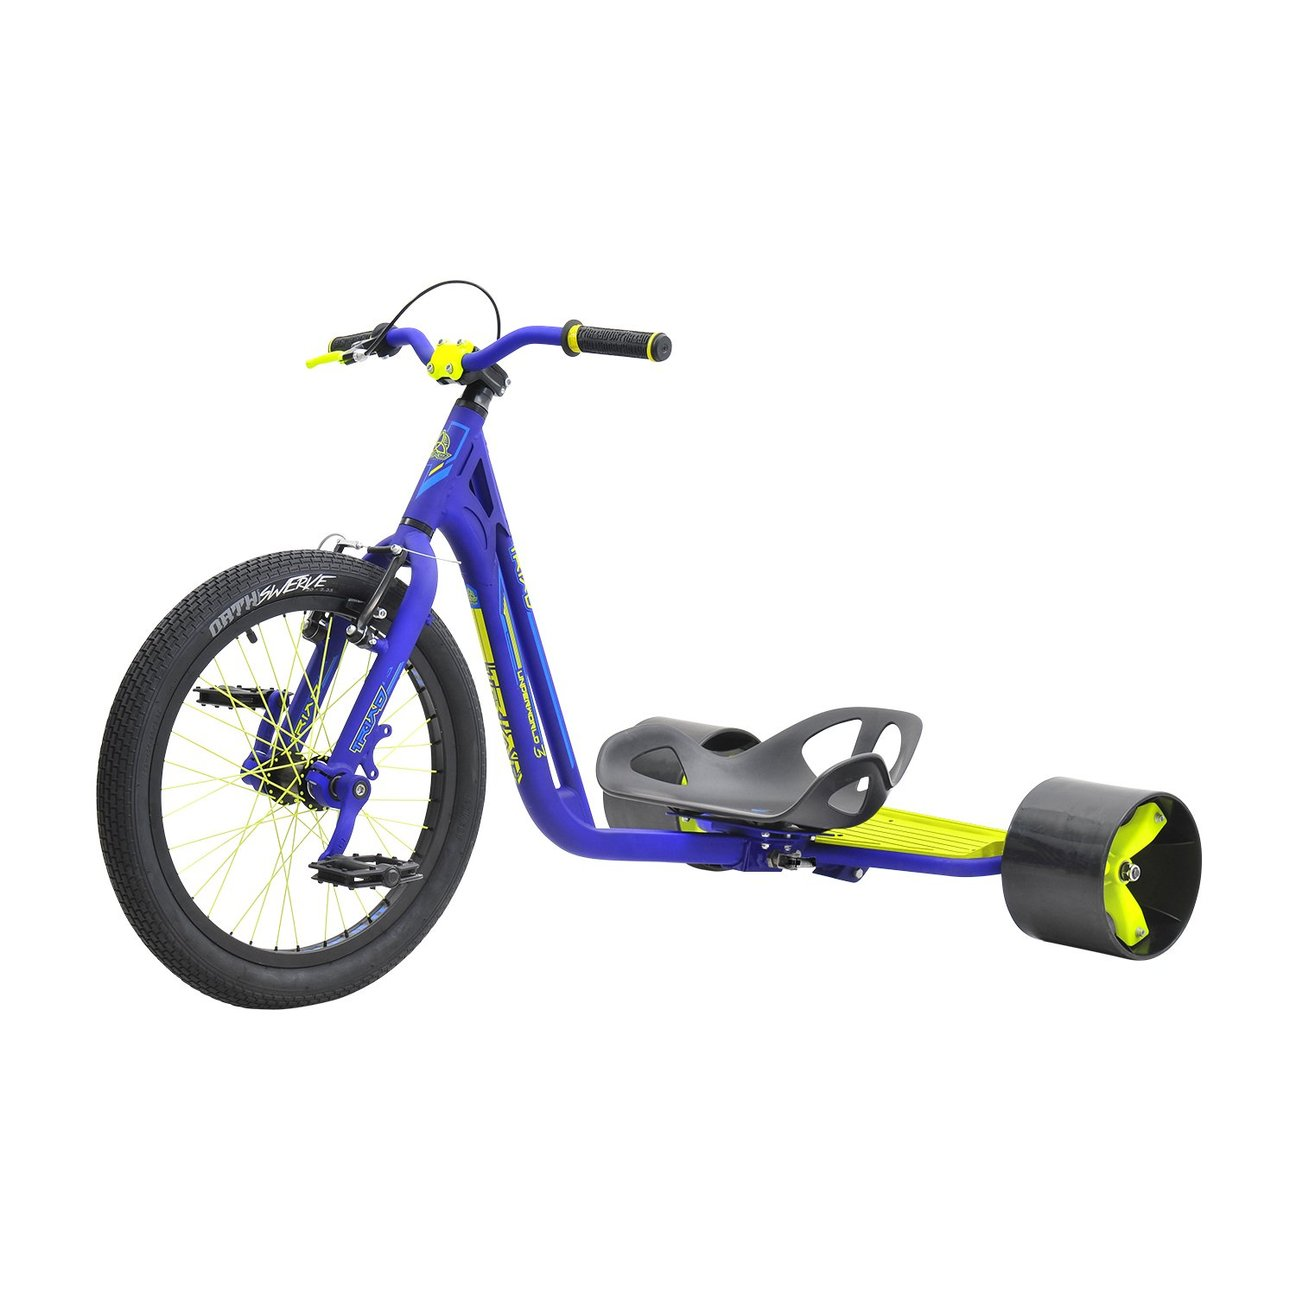 Triad Drift Trike - Underworld 3 - Adult Tricycle with Snake Head Frame, Commander V Brakes Blue/Neon Yellow